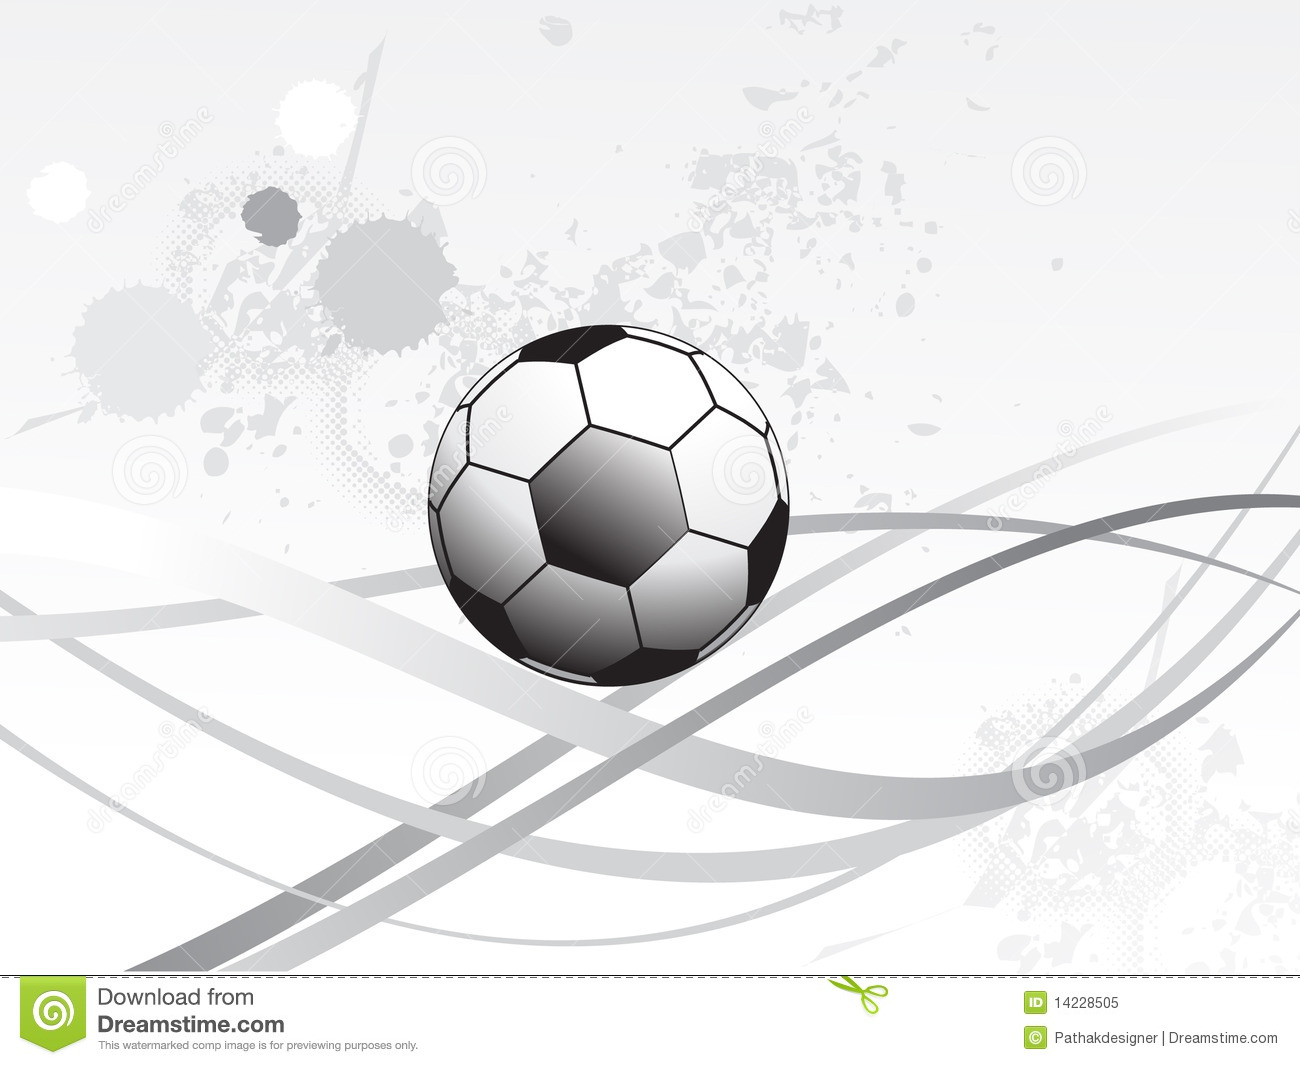 Abstract Sports Background Royalty Free Stock Image: Abstract Sport Background With Grunge Royalty Free Stock